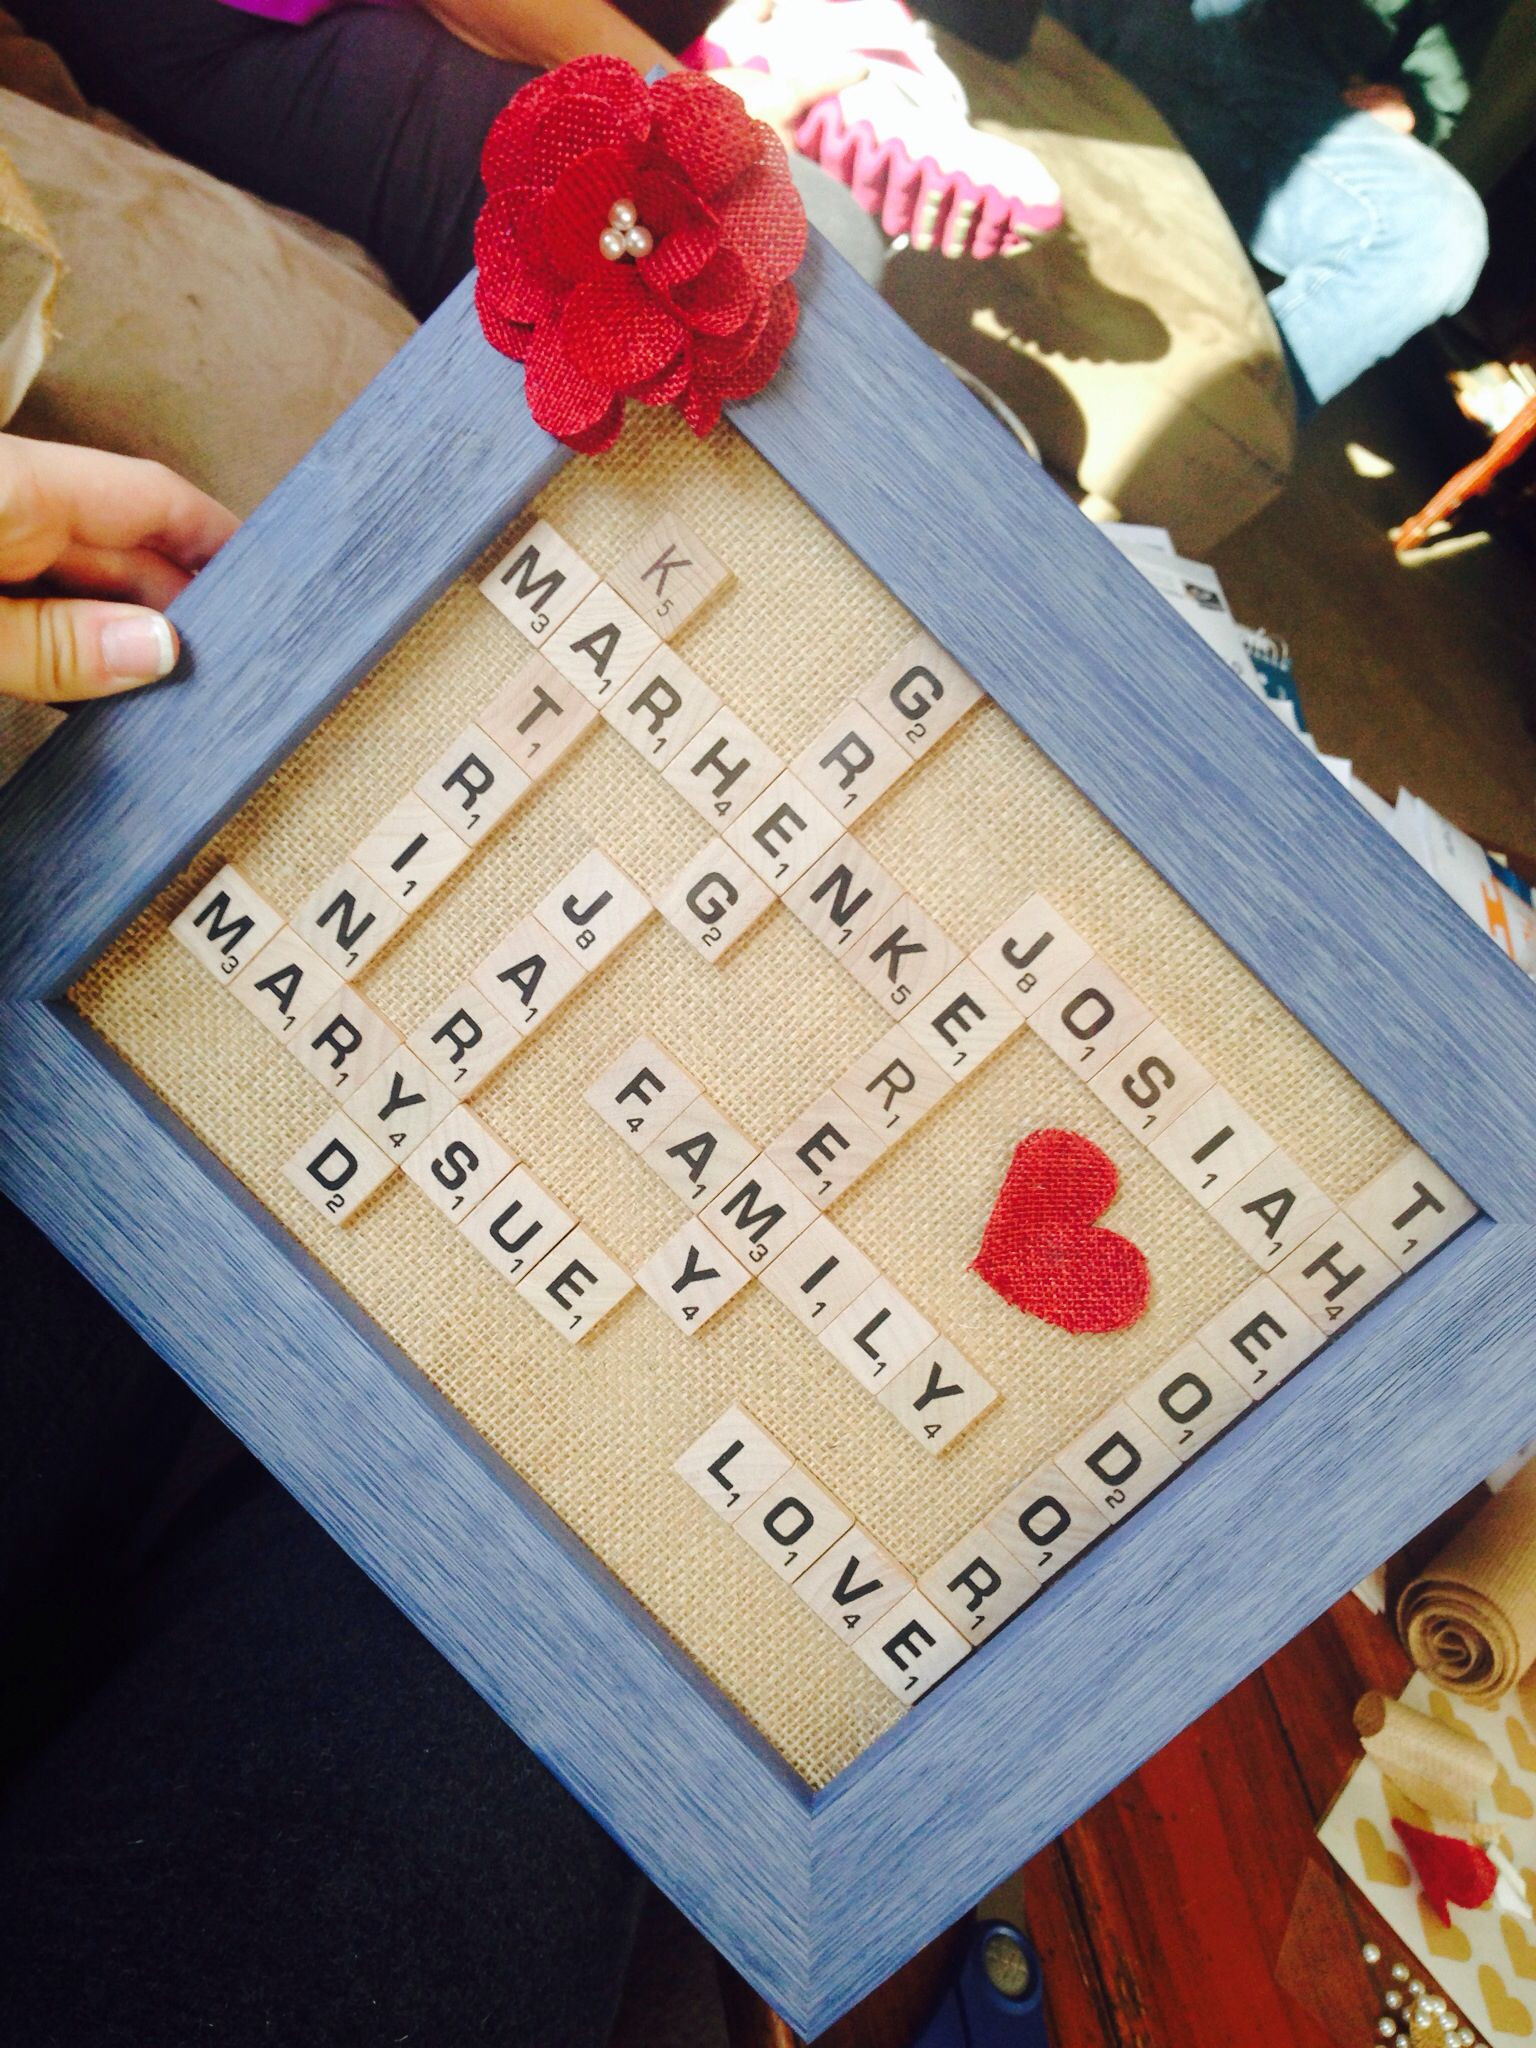 25 Ideas for Gift Ideas Boyfriends Parents - Home, Family